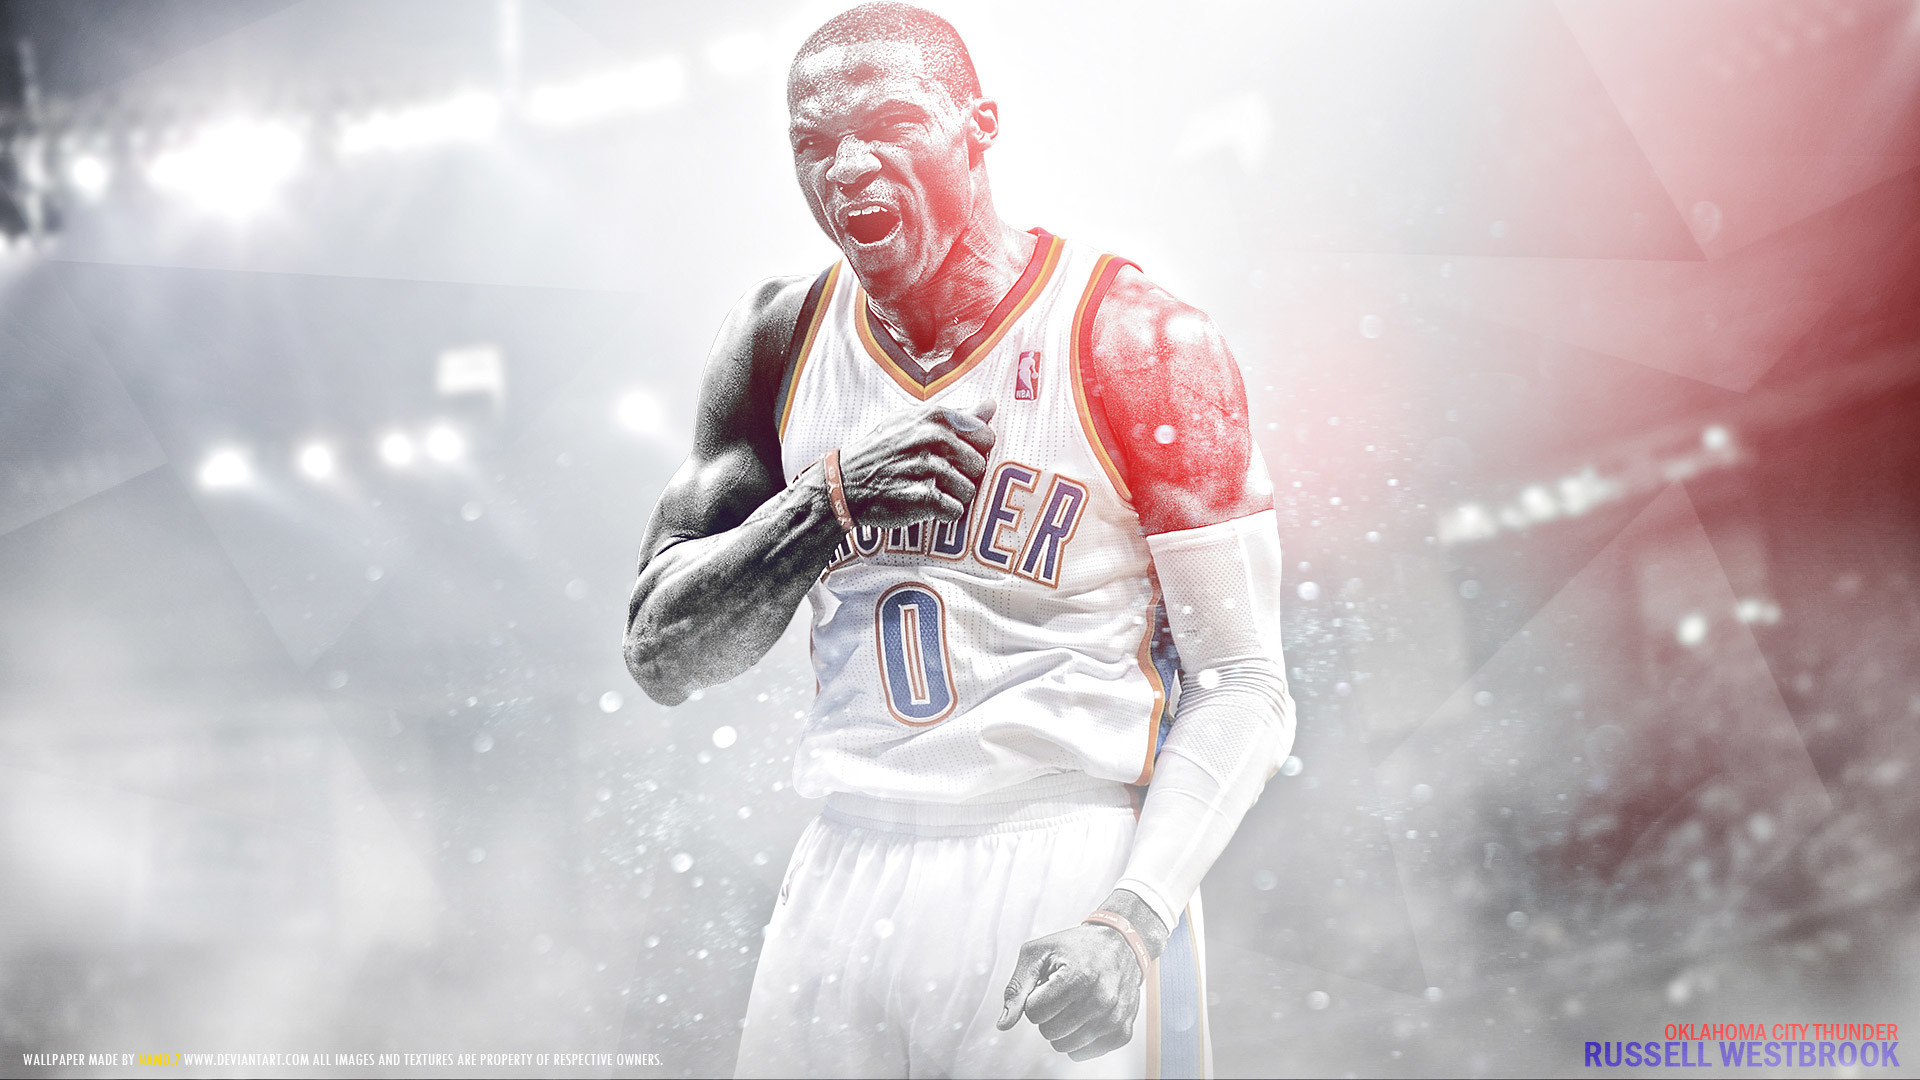 1920x1080 Russ Westbrook 2016  Wallpaper